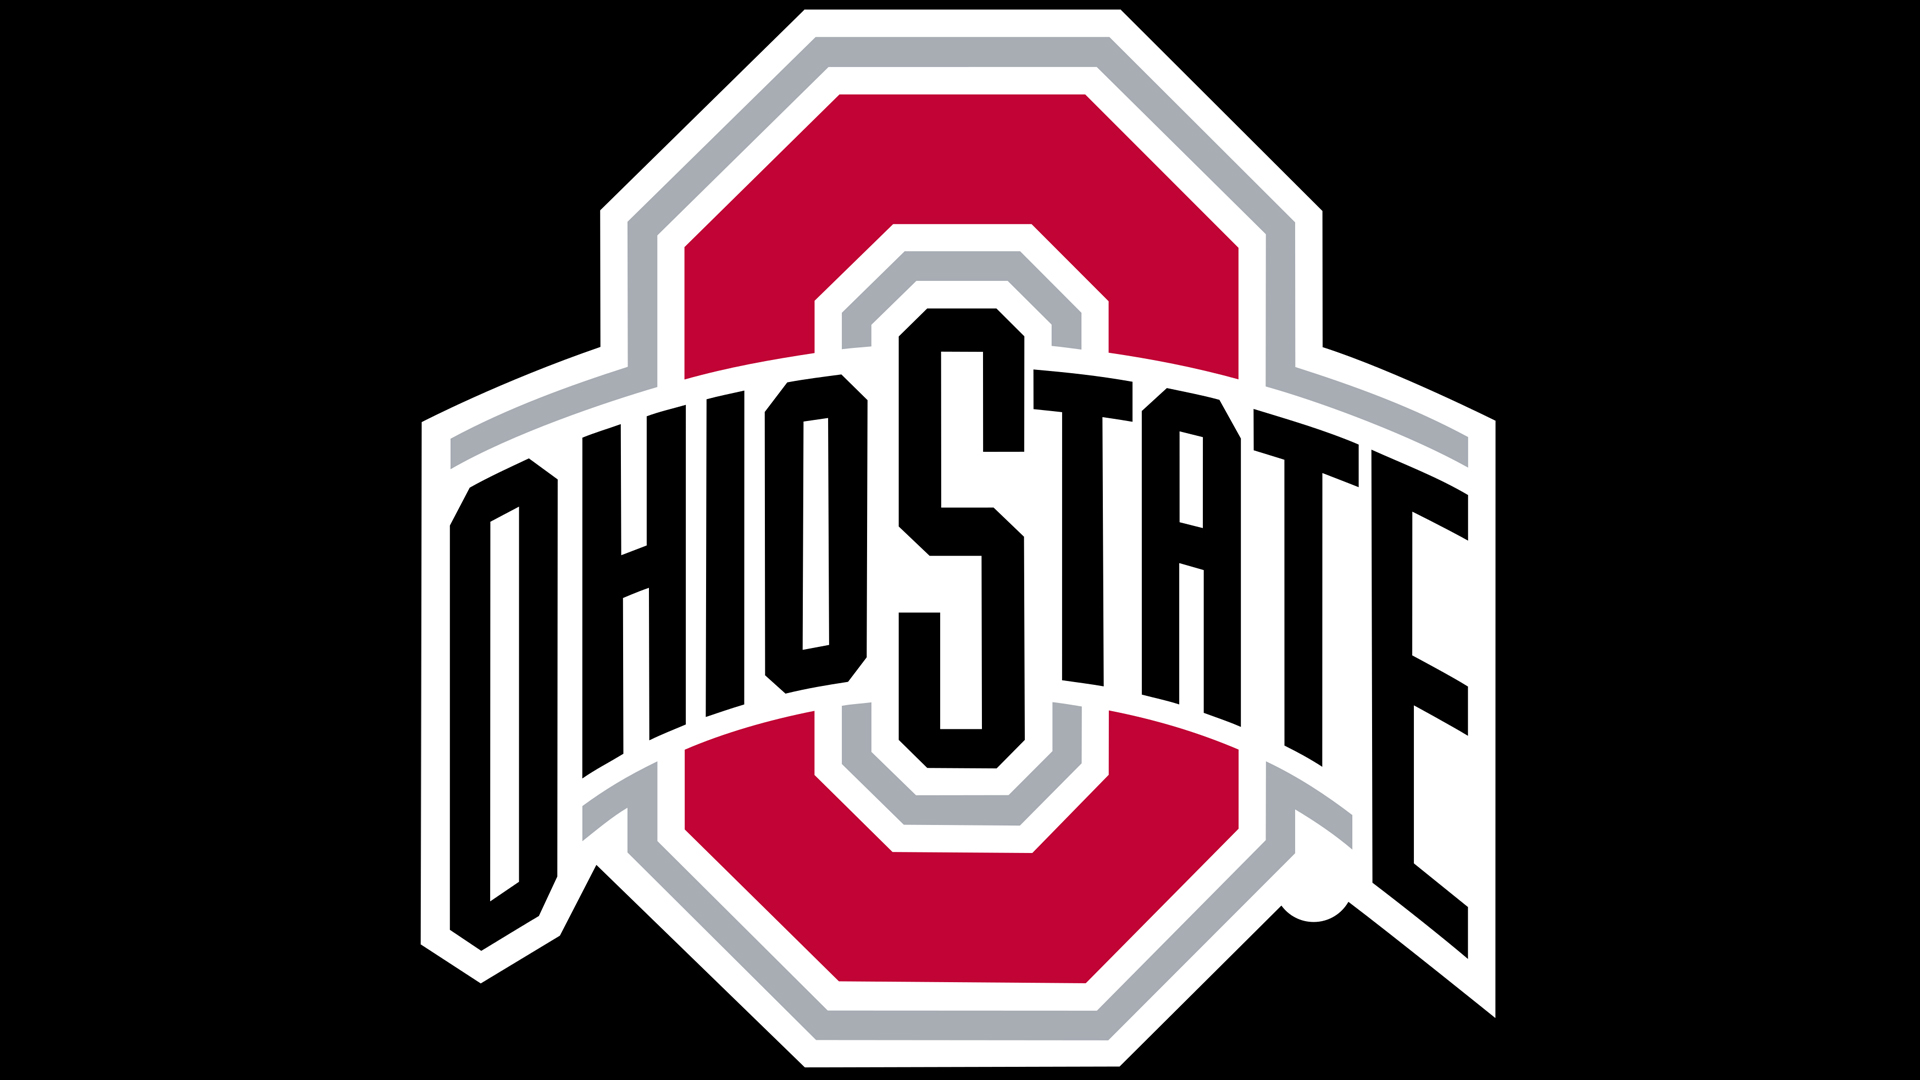 Meaning Ohio State logo and symbol.